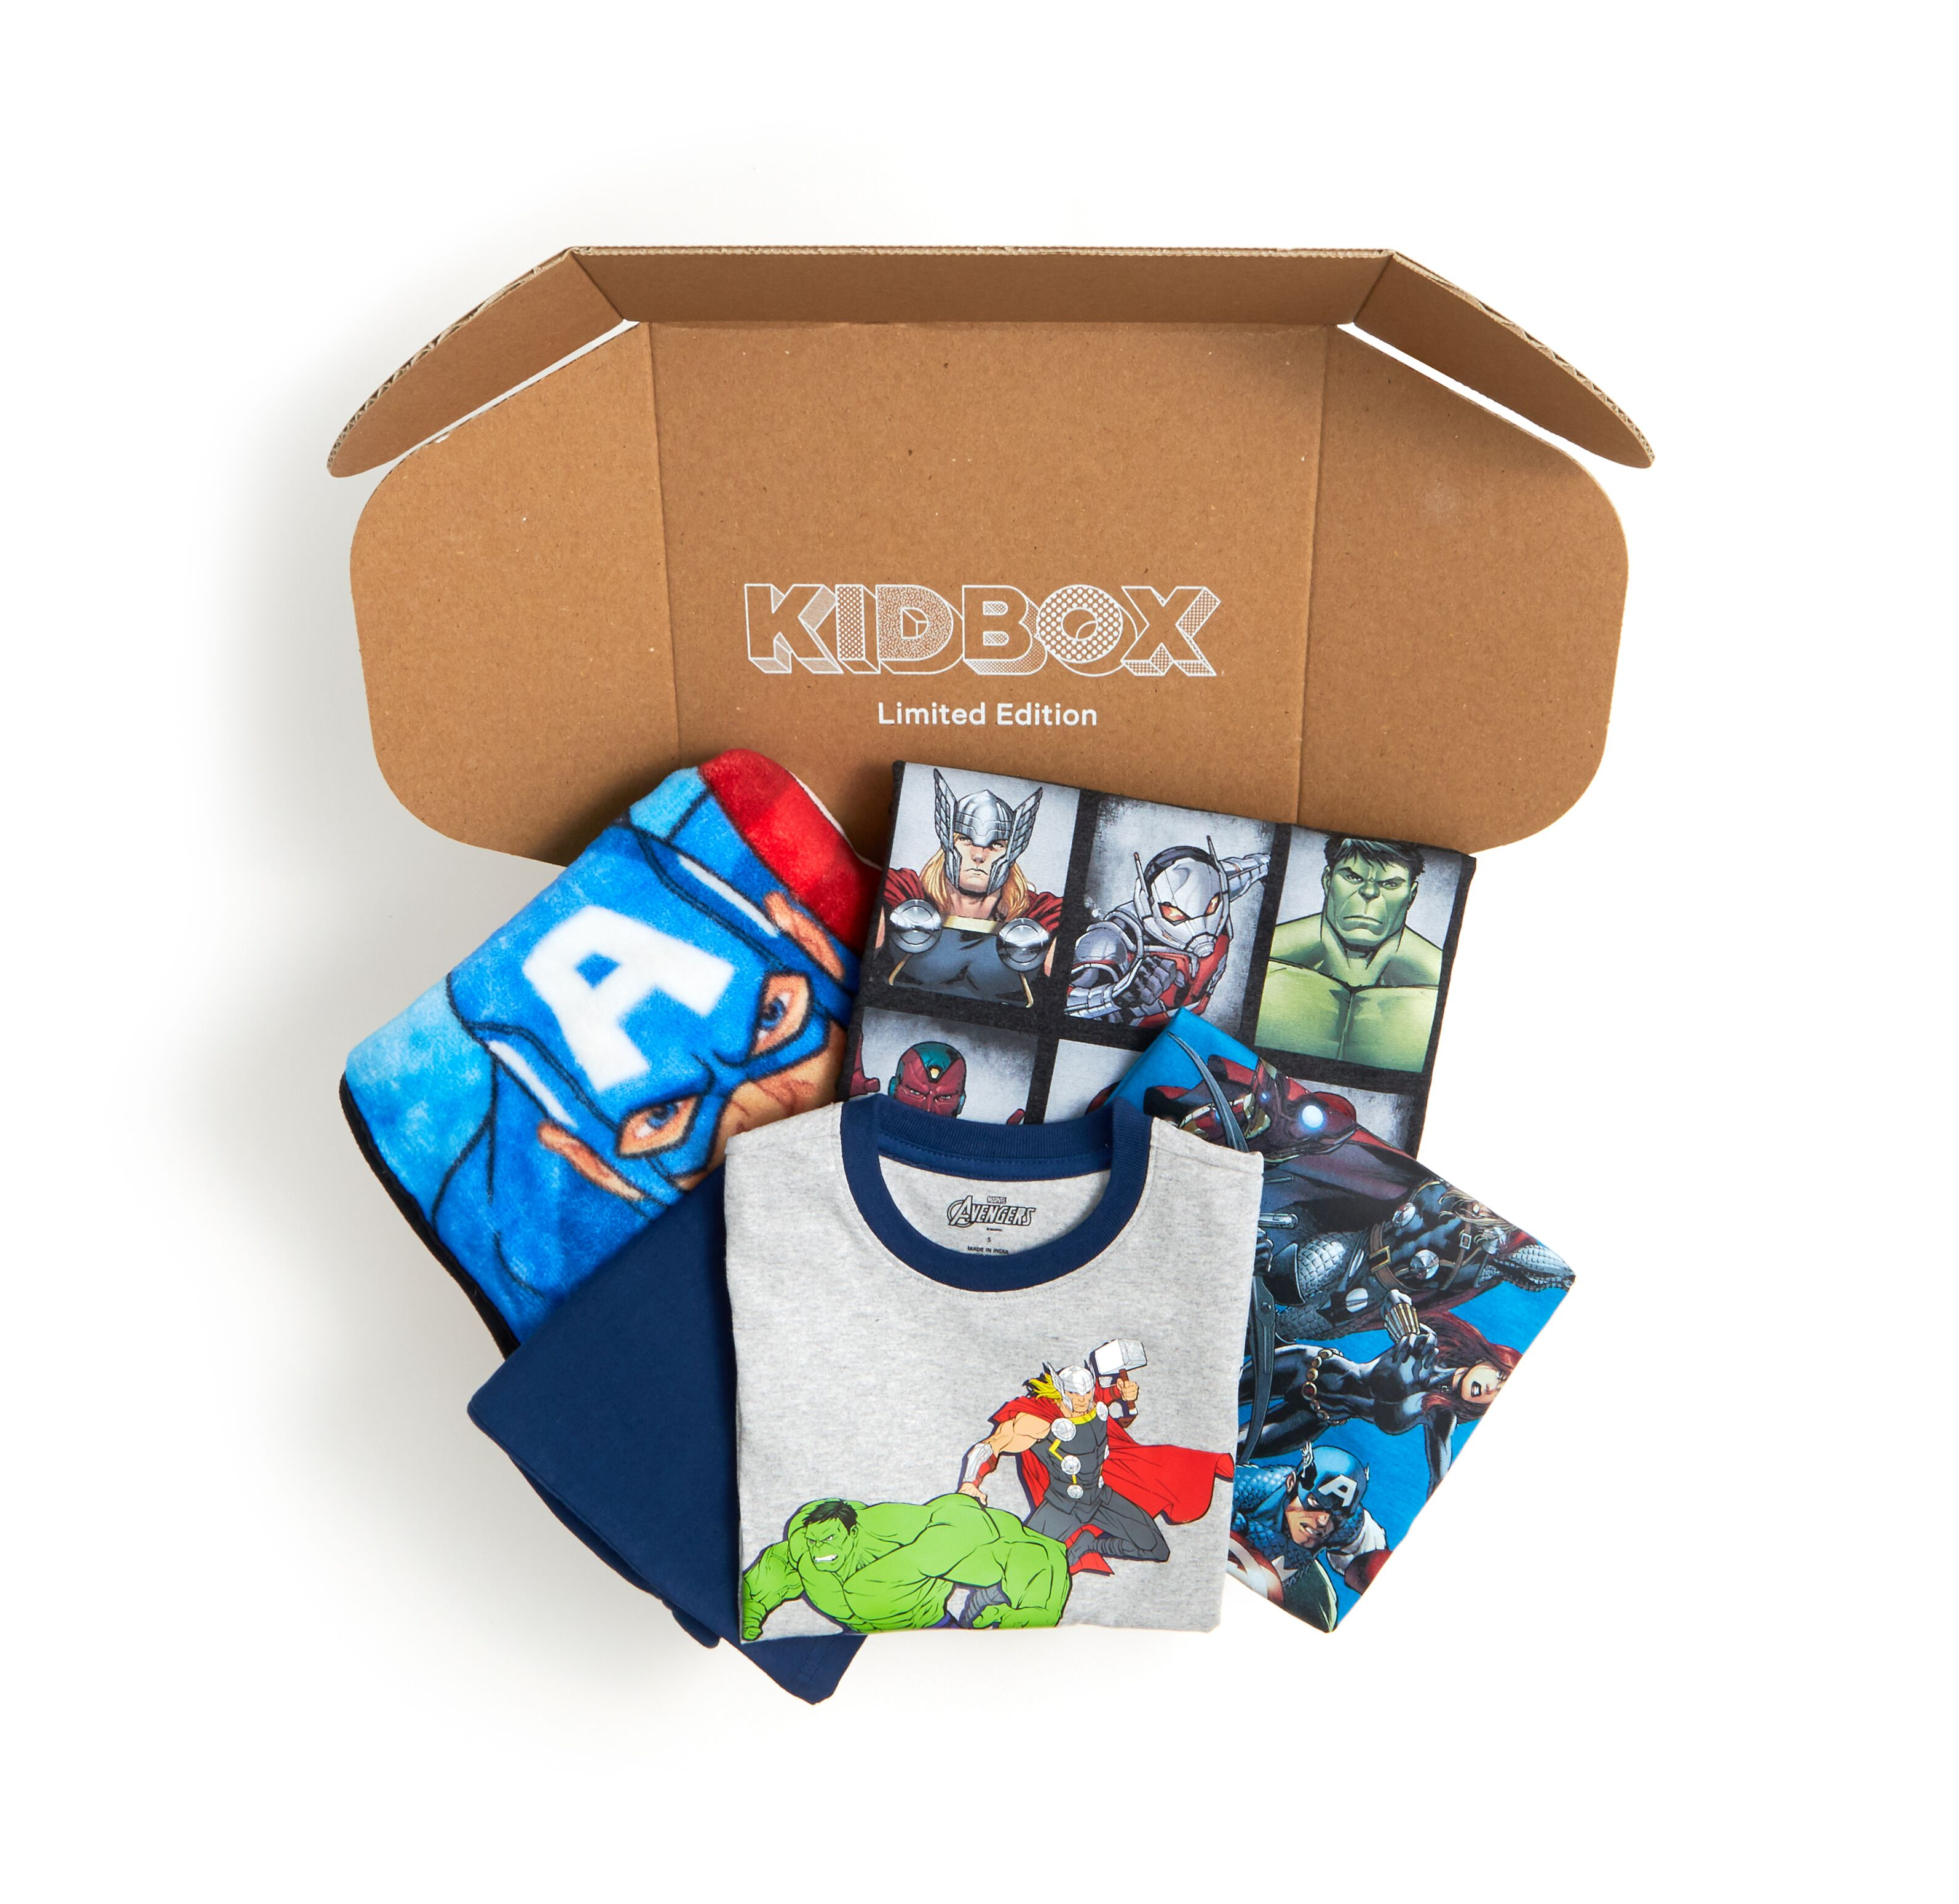 KIDBOX Launches Disney, Star Wars and Marvel Themed Style Boxes 6